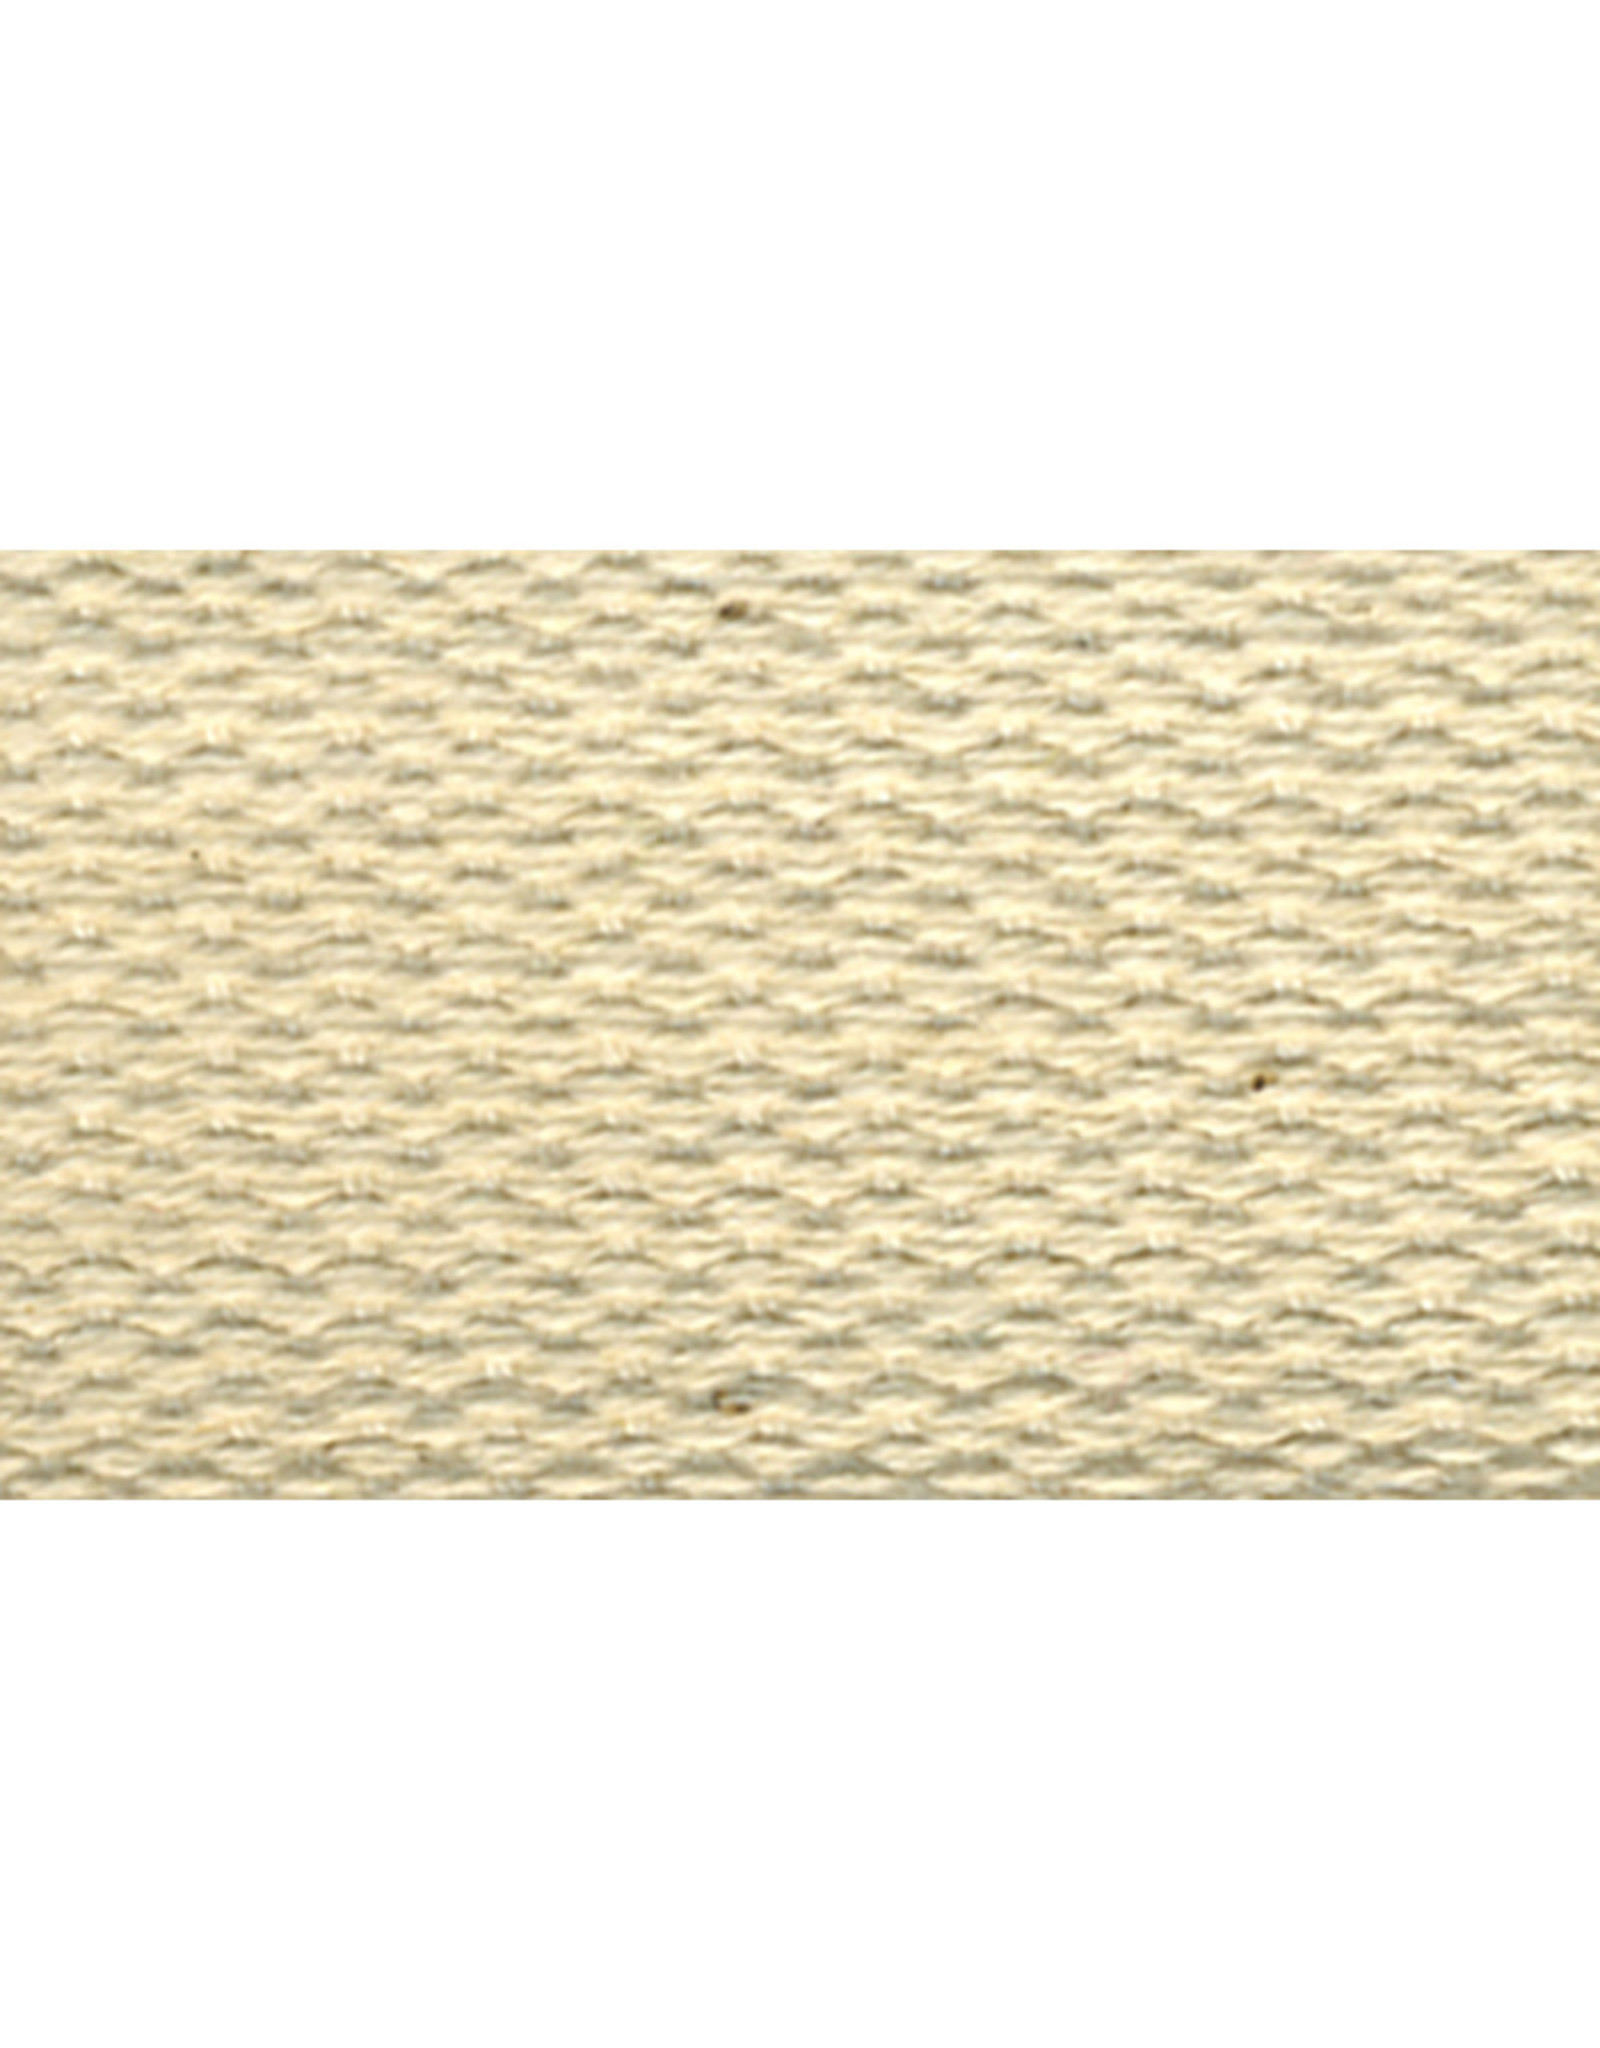 United Notions Cream/Natural Cotton Webbing Strapping by the Yard, 1 inch wide